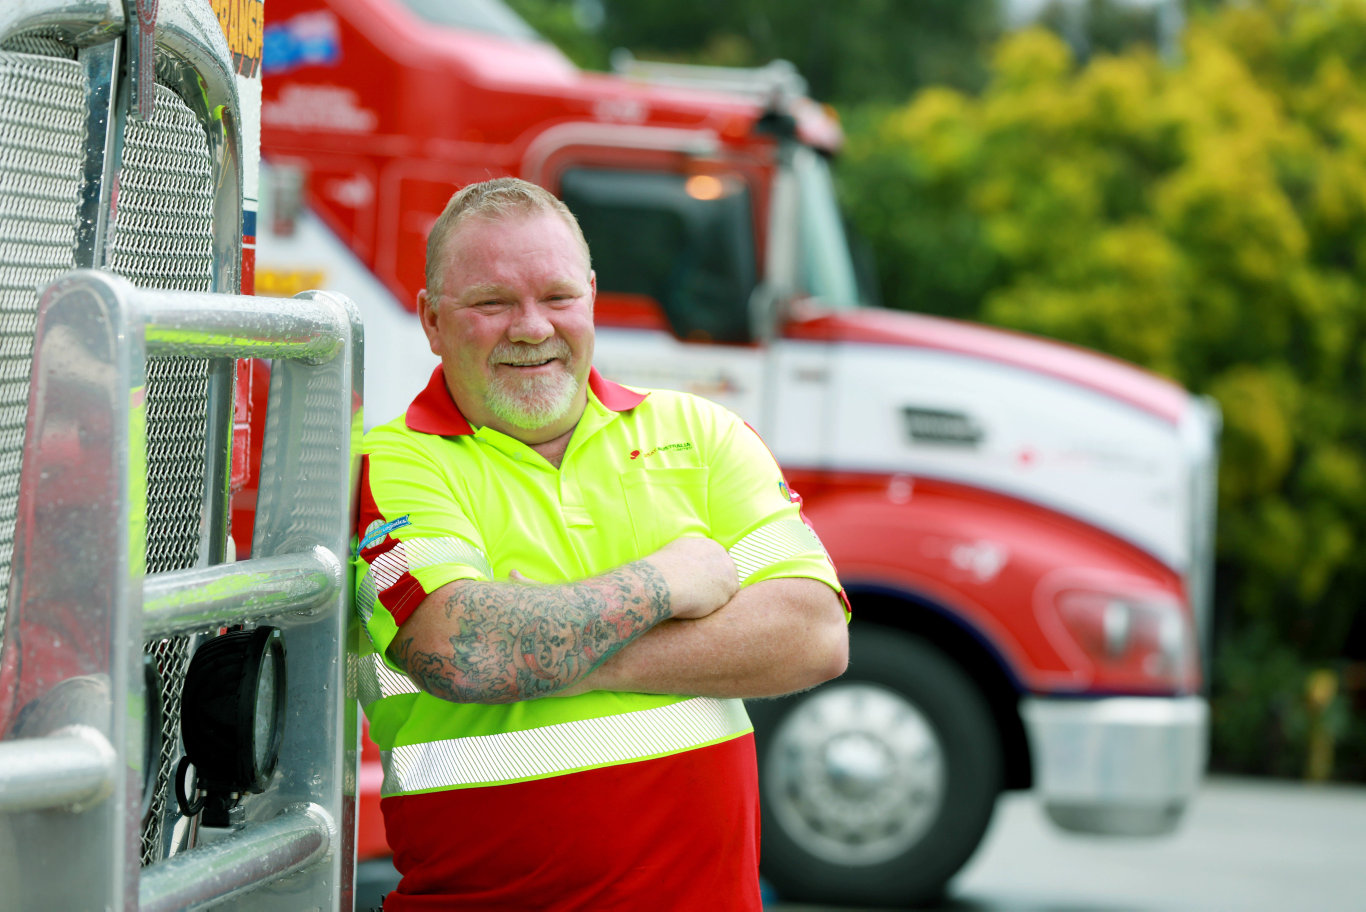 BLACKTOWN ADVOCATE/AAP. Truck driver Darren Cooke poses for photographs at the Lindsay Transport Depot in Arndell Park. Arndell Park, Friday 03 May, 2019. Truckie Darren Cooke has taken out a national award for helping save the life off another truck driver. (AAP IMAGE / Angelo Velardo)